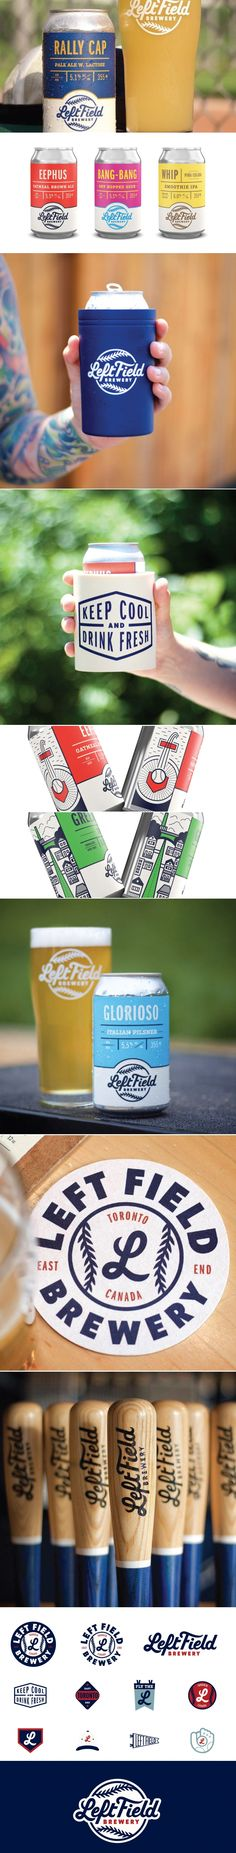 CODO Design's Work For Left Field Brewery is a Home Run | Dieline